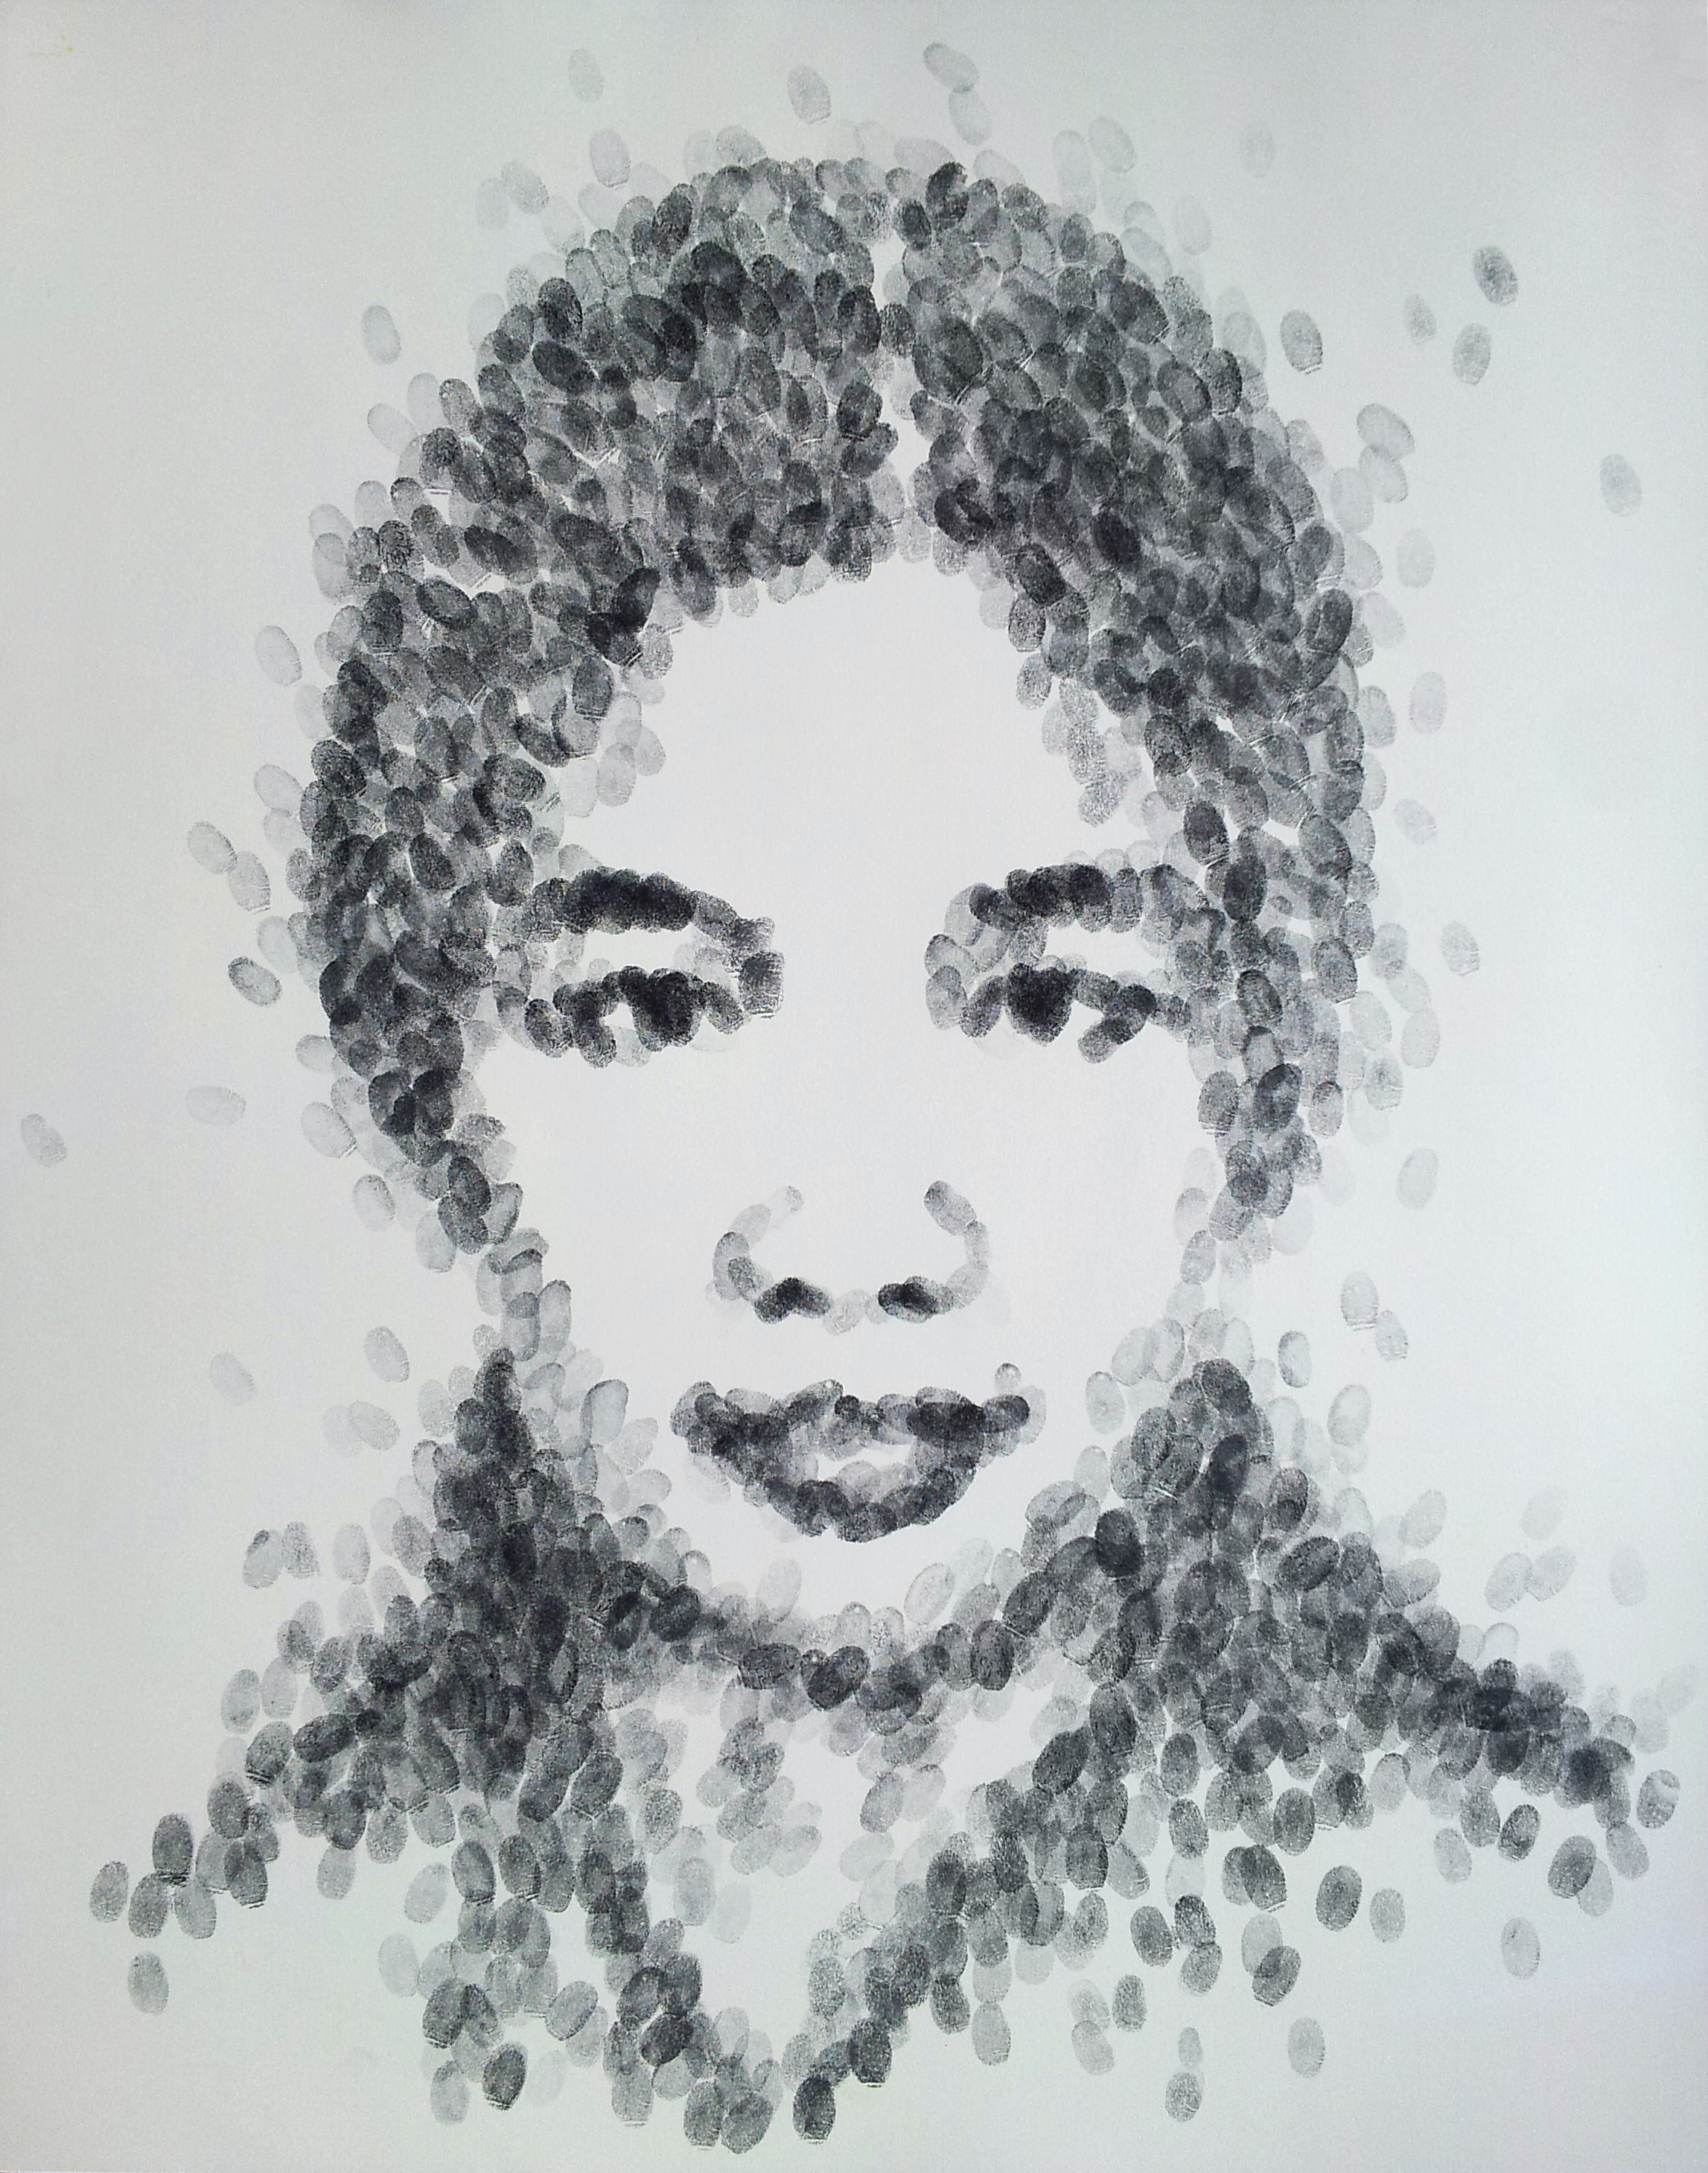 Bà Ngoại (Grandmother)  , 2015 Ink (fingerprints) on paper, 19 x 24  In considering those who have touched me my life so deeply and have left their imprints, I sigh a deep breath of gratitude for my Grandmother. Her faithfulness, her thoughtfulness, her reverence for humanity, and the way she gave love so generously has moved me in such profound ways, that I have embraced these as life lessons to help me live a fulfilling life. In this way and in so many others, she lives on through me and has helped shaped my identity.   My hands grazed her face softly and intimately as I created this portrait of her with my own fingerprints. The marks symbolize this identity that she had helped develop throughout my life while she was here with us, as well as the identity that her vivid memory continues contouring still.